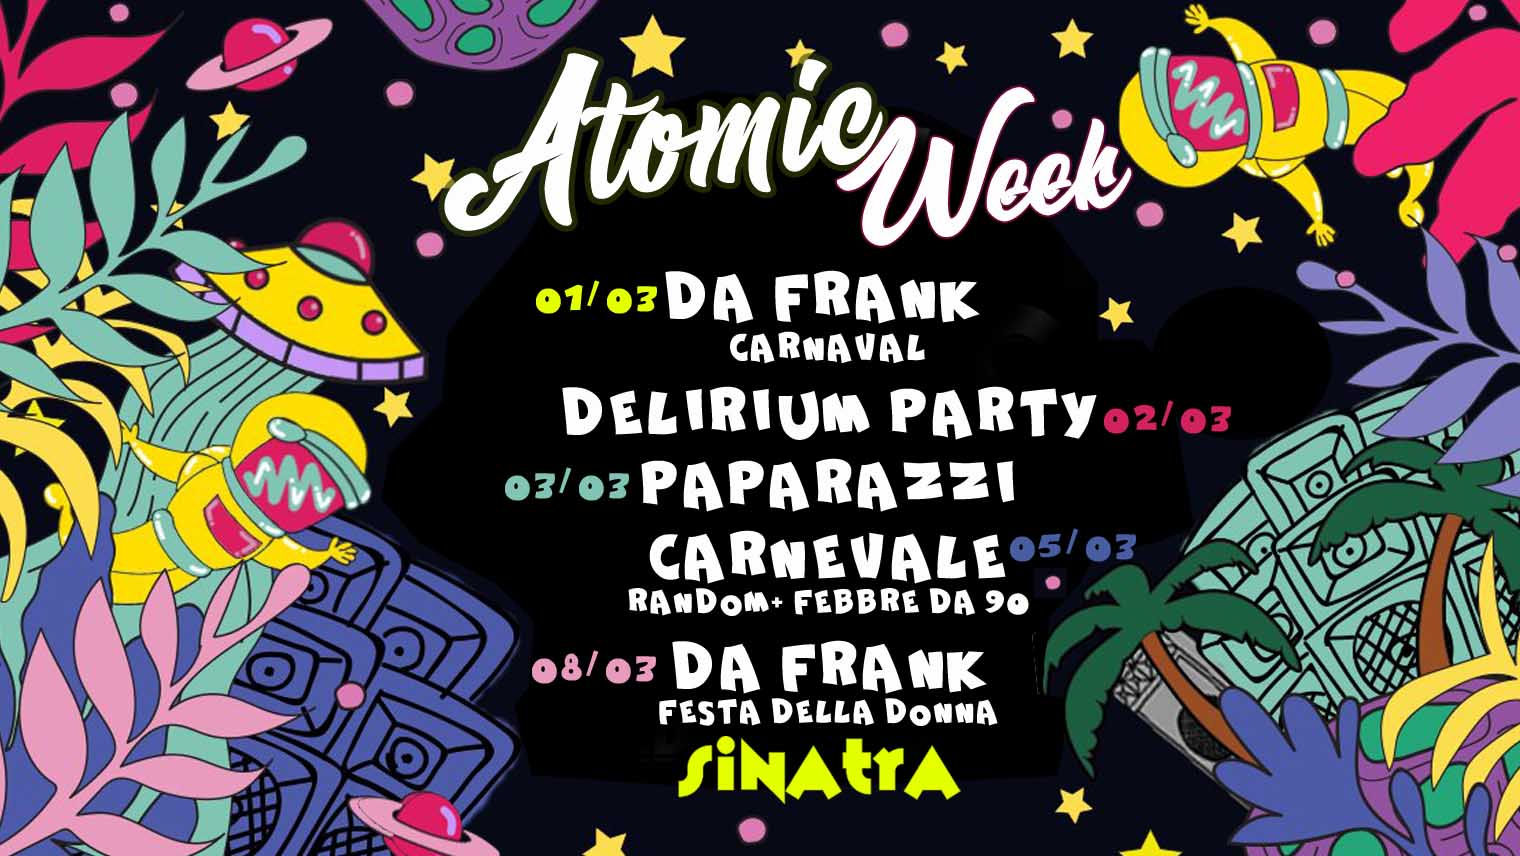 ATOMIC week di carnevale